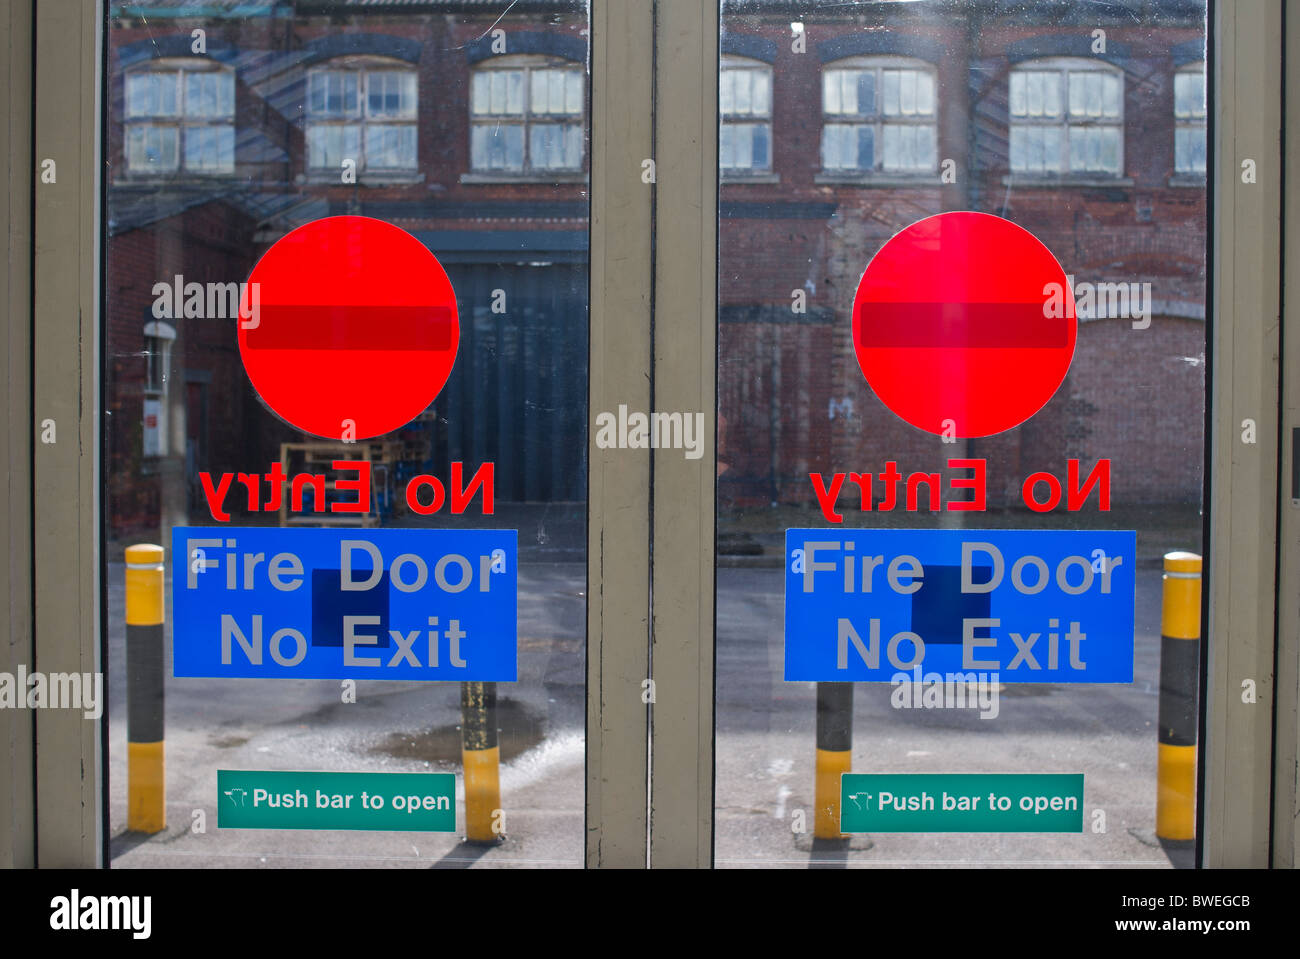 "Fire door ""No Exit"" signs in public shopping outlet centre in UK Stock Photo"